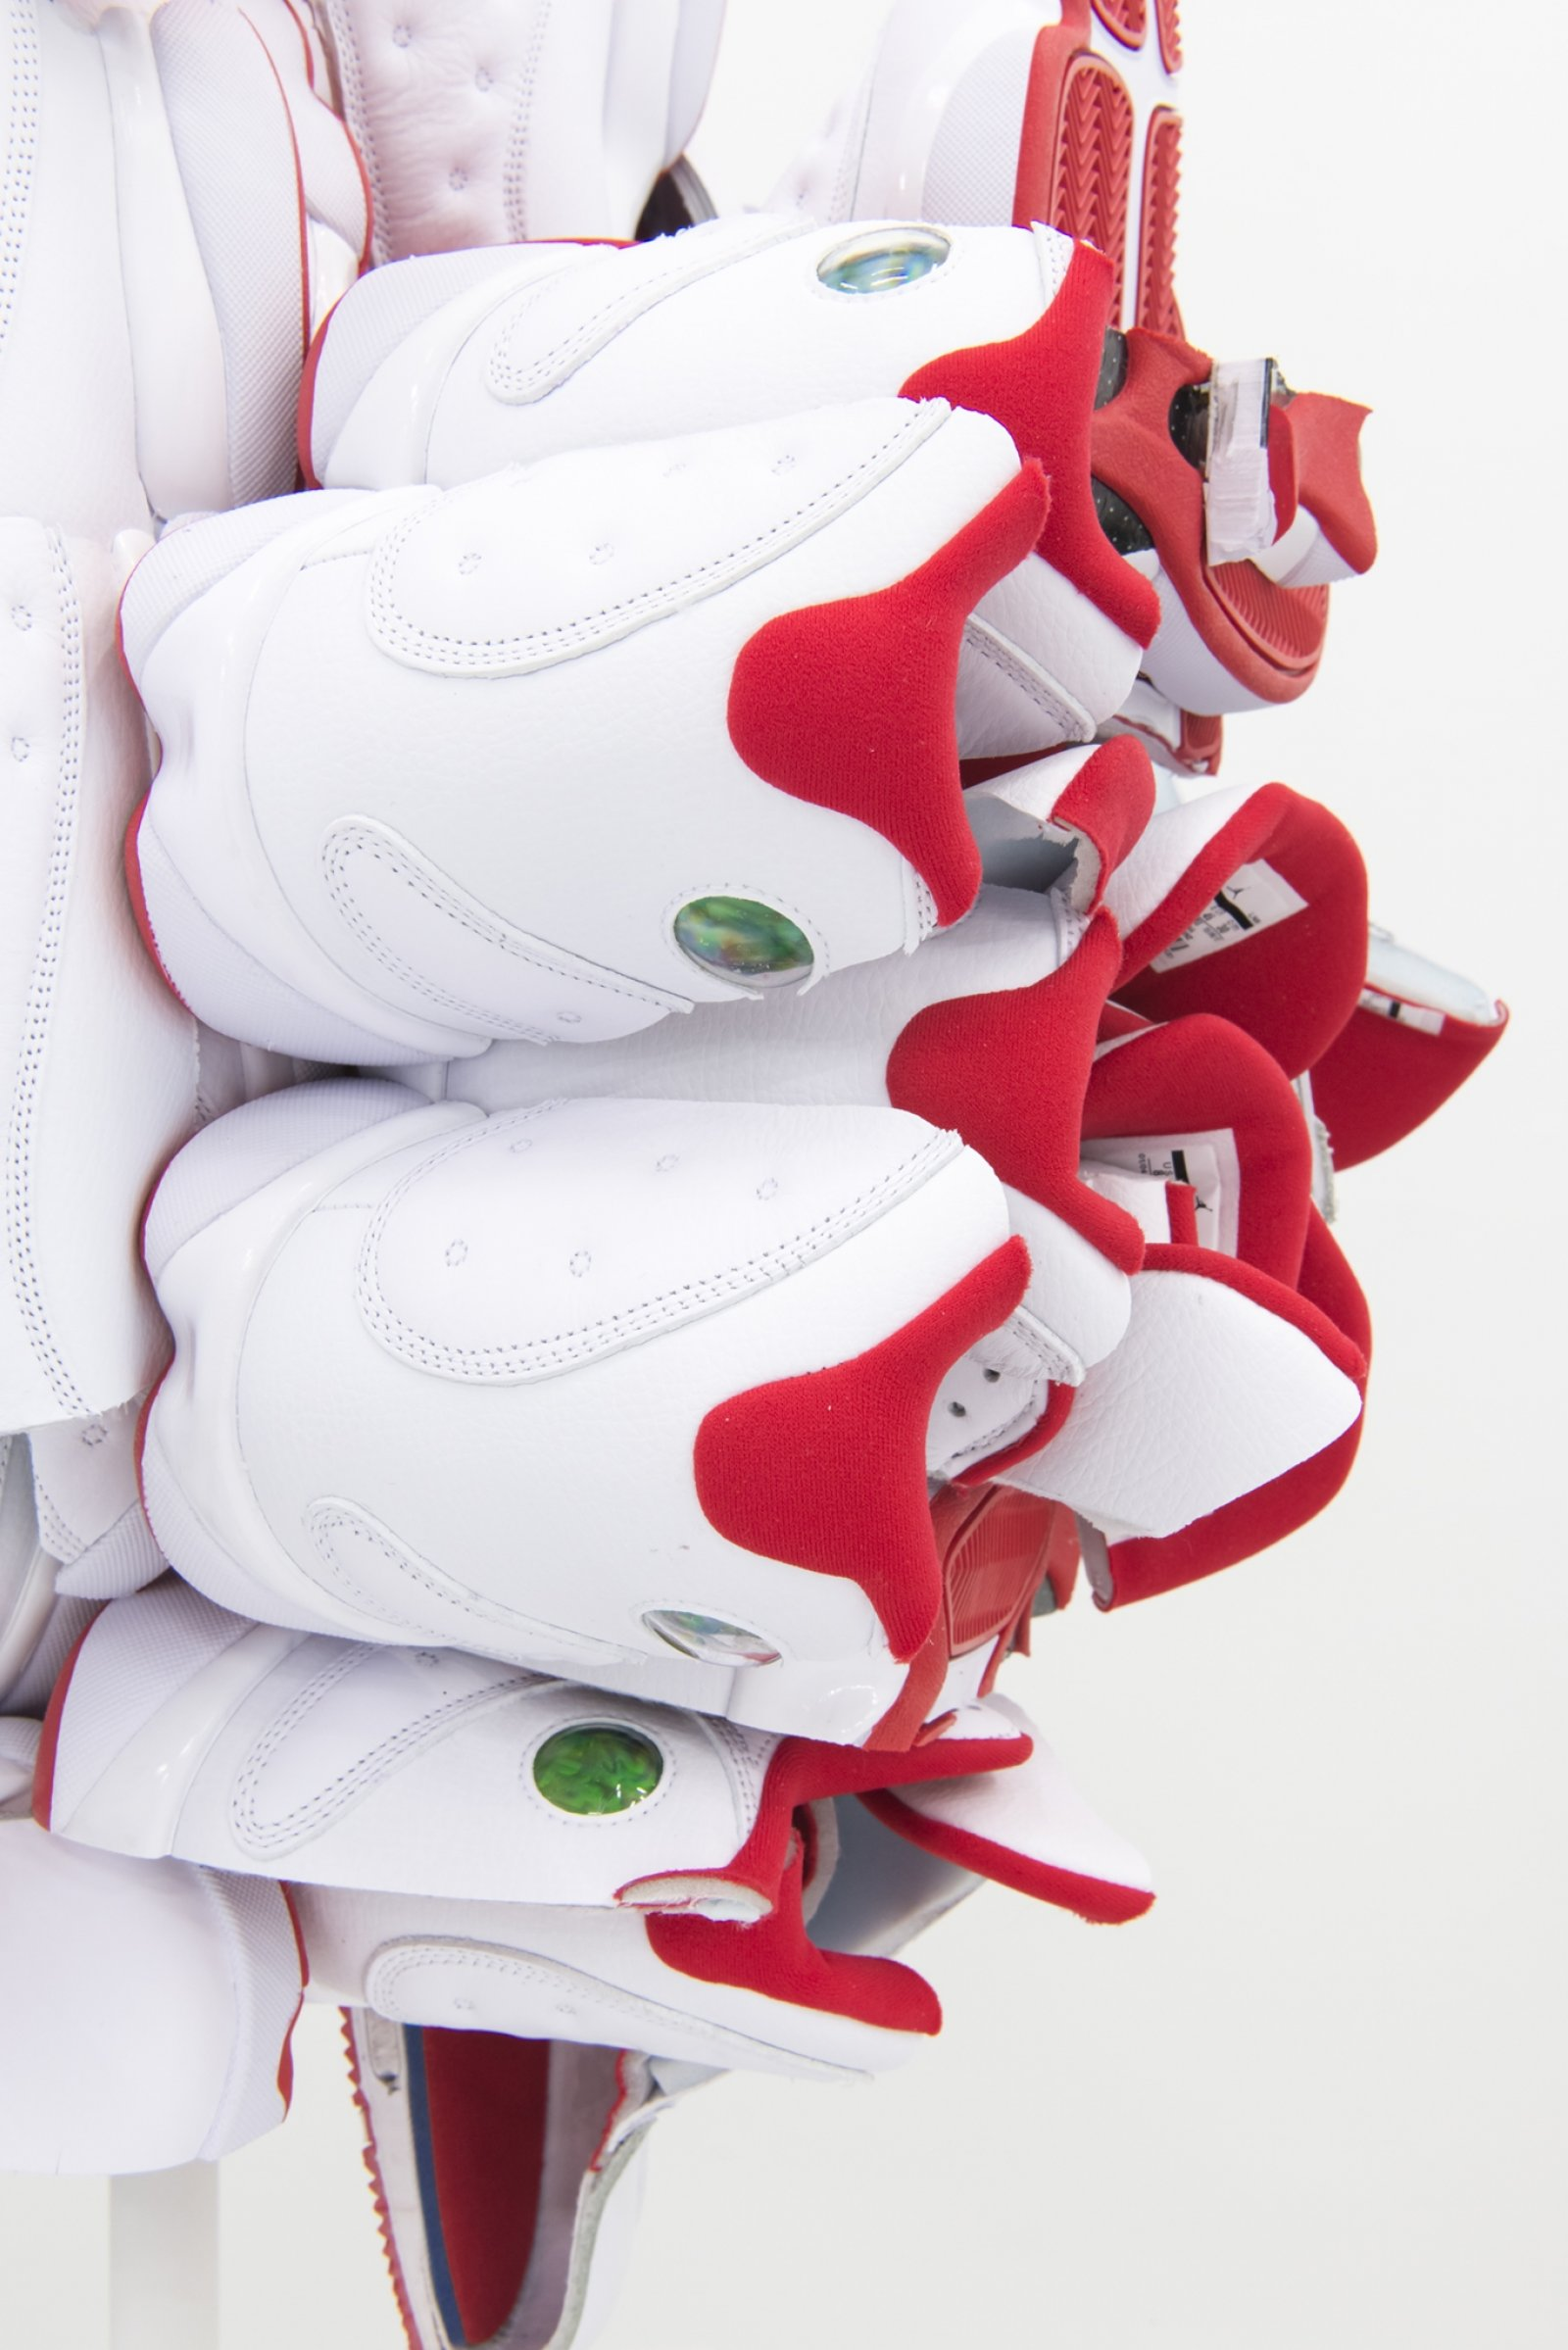 Brian Jungen, Supersize the Light in All Directions 2 (detail), 2018, nike air jordans, 29 x 29 x 29 in. (74 x 74 x 74 cm)